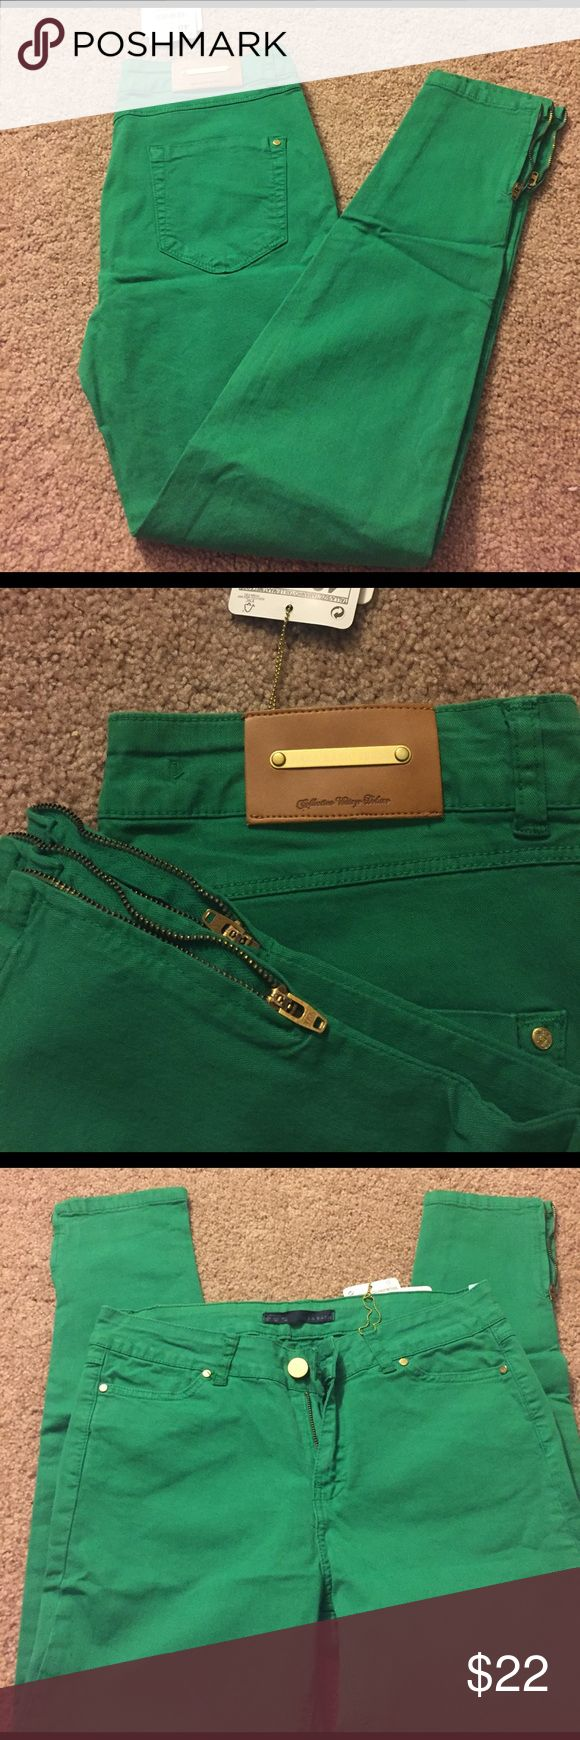 Zara Green Skinny Jeans; NWT; Sz 8 Brand new green skinny jeans with zippers at the bottom. Cute Zara logo on the back, 4 pockets, and zip-fly. Waist is 29 inches, inseam is 27 inches. Zara Jeans Skinny